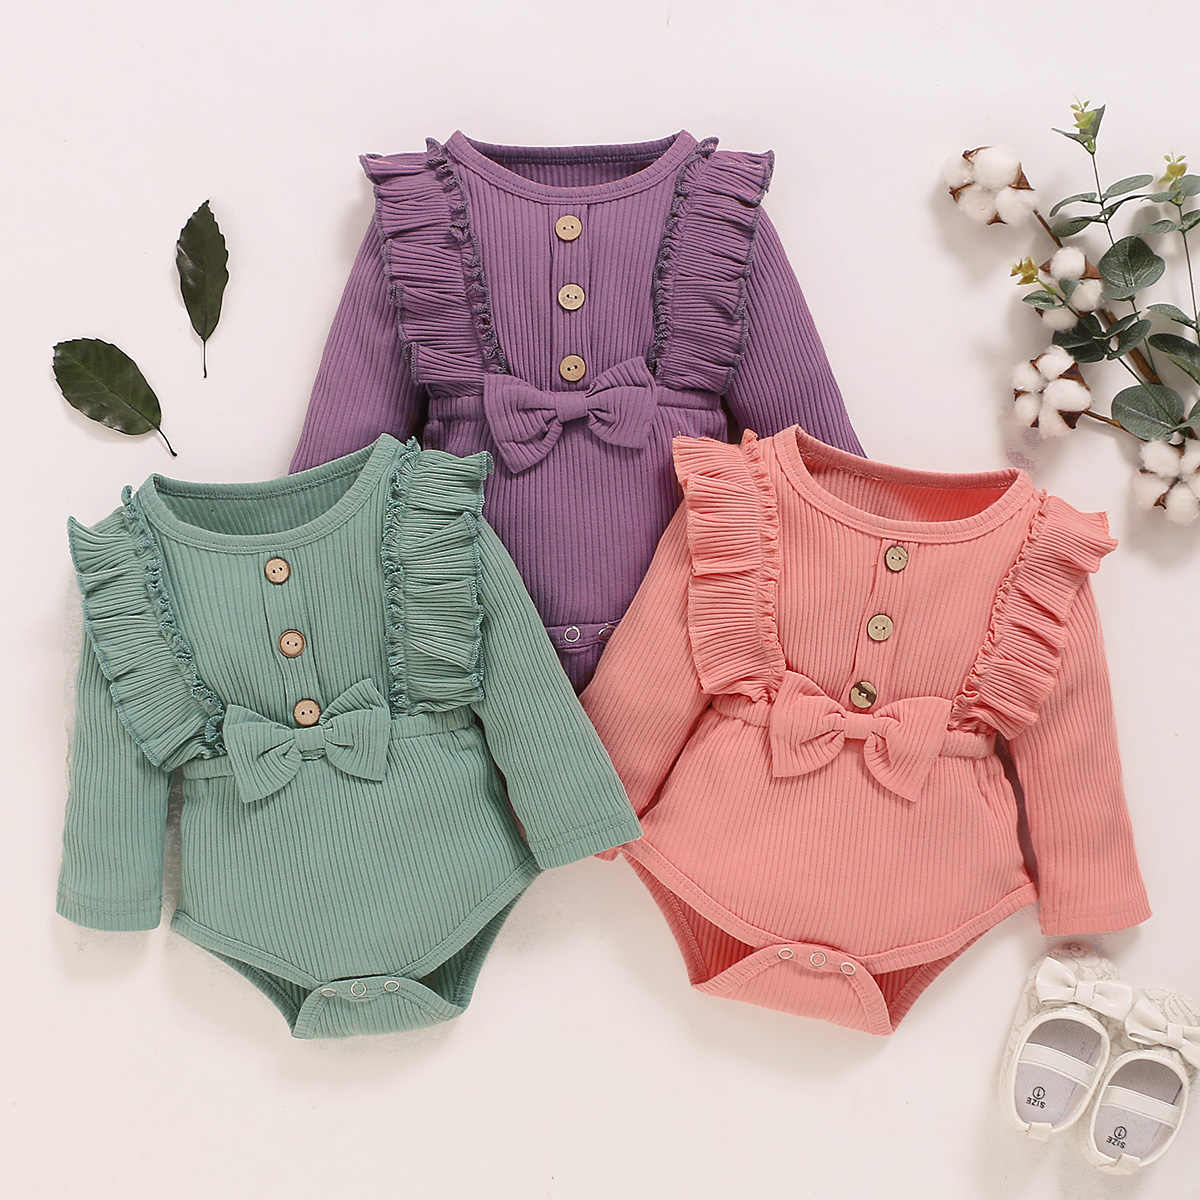 Toddler's Spring Autumn Clothes Solid Color Ruffle Long Sleeves Ribbed Rompers with Bowknot for Baby Girl  0-18 Months